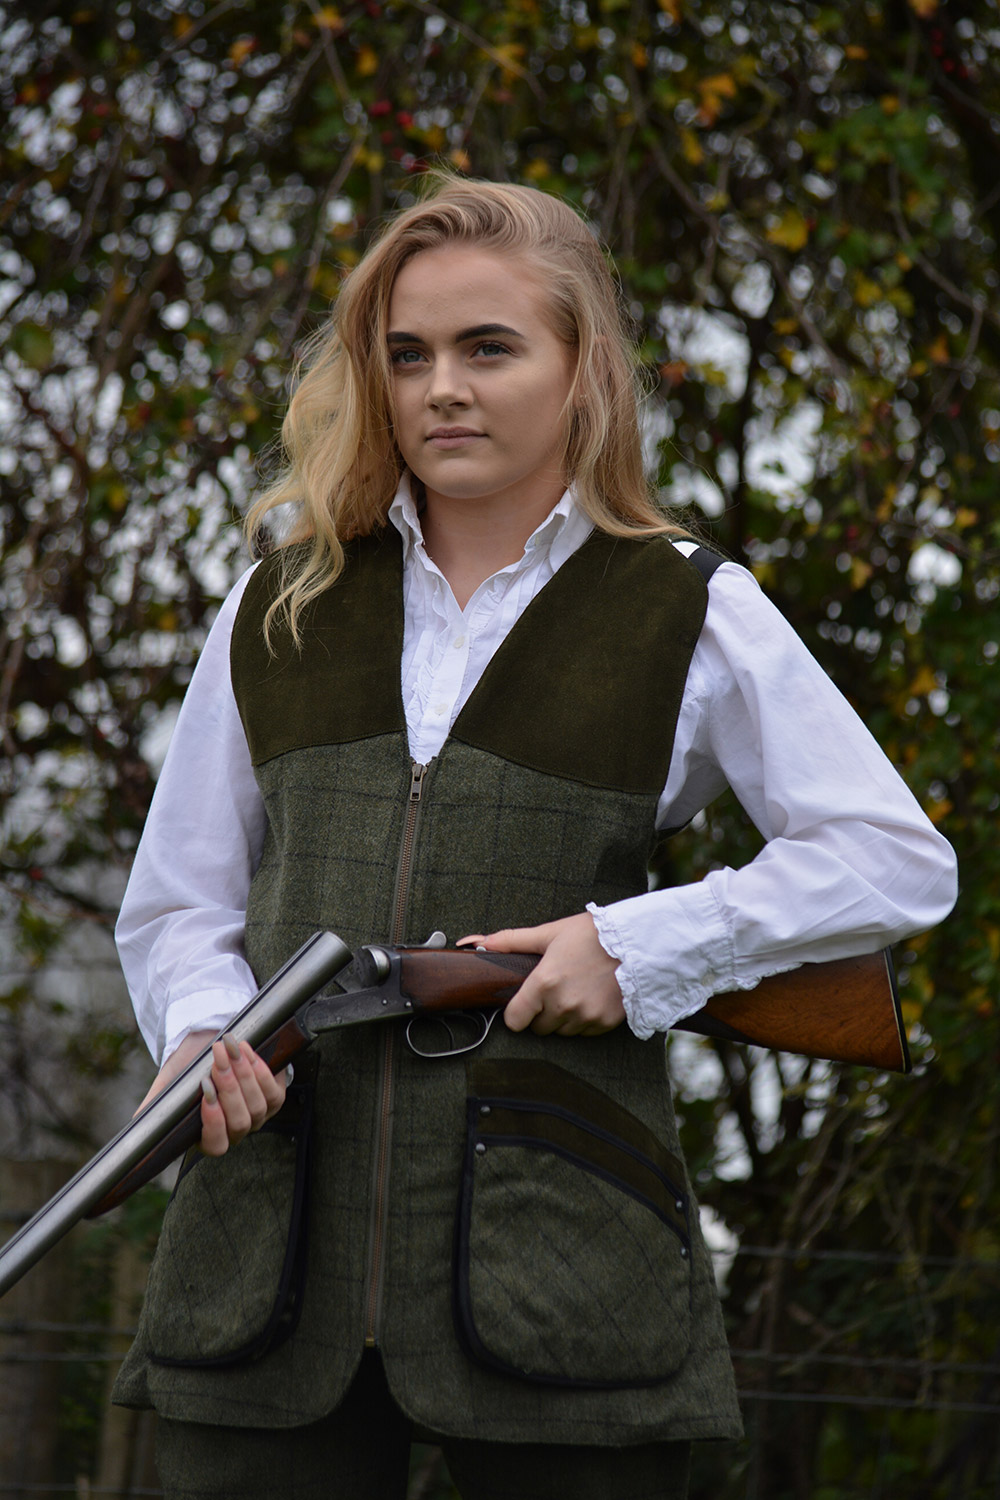 Emma-Brown-Tweed-Thistle-Shooting-Vest-Front-with-Gun.jpg